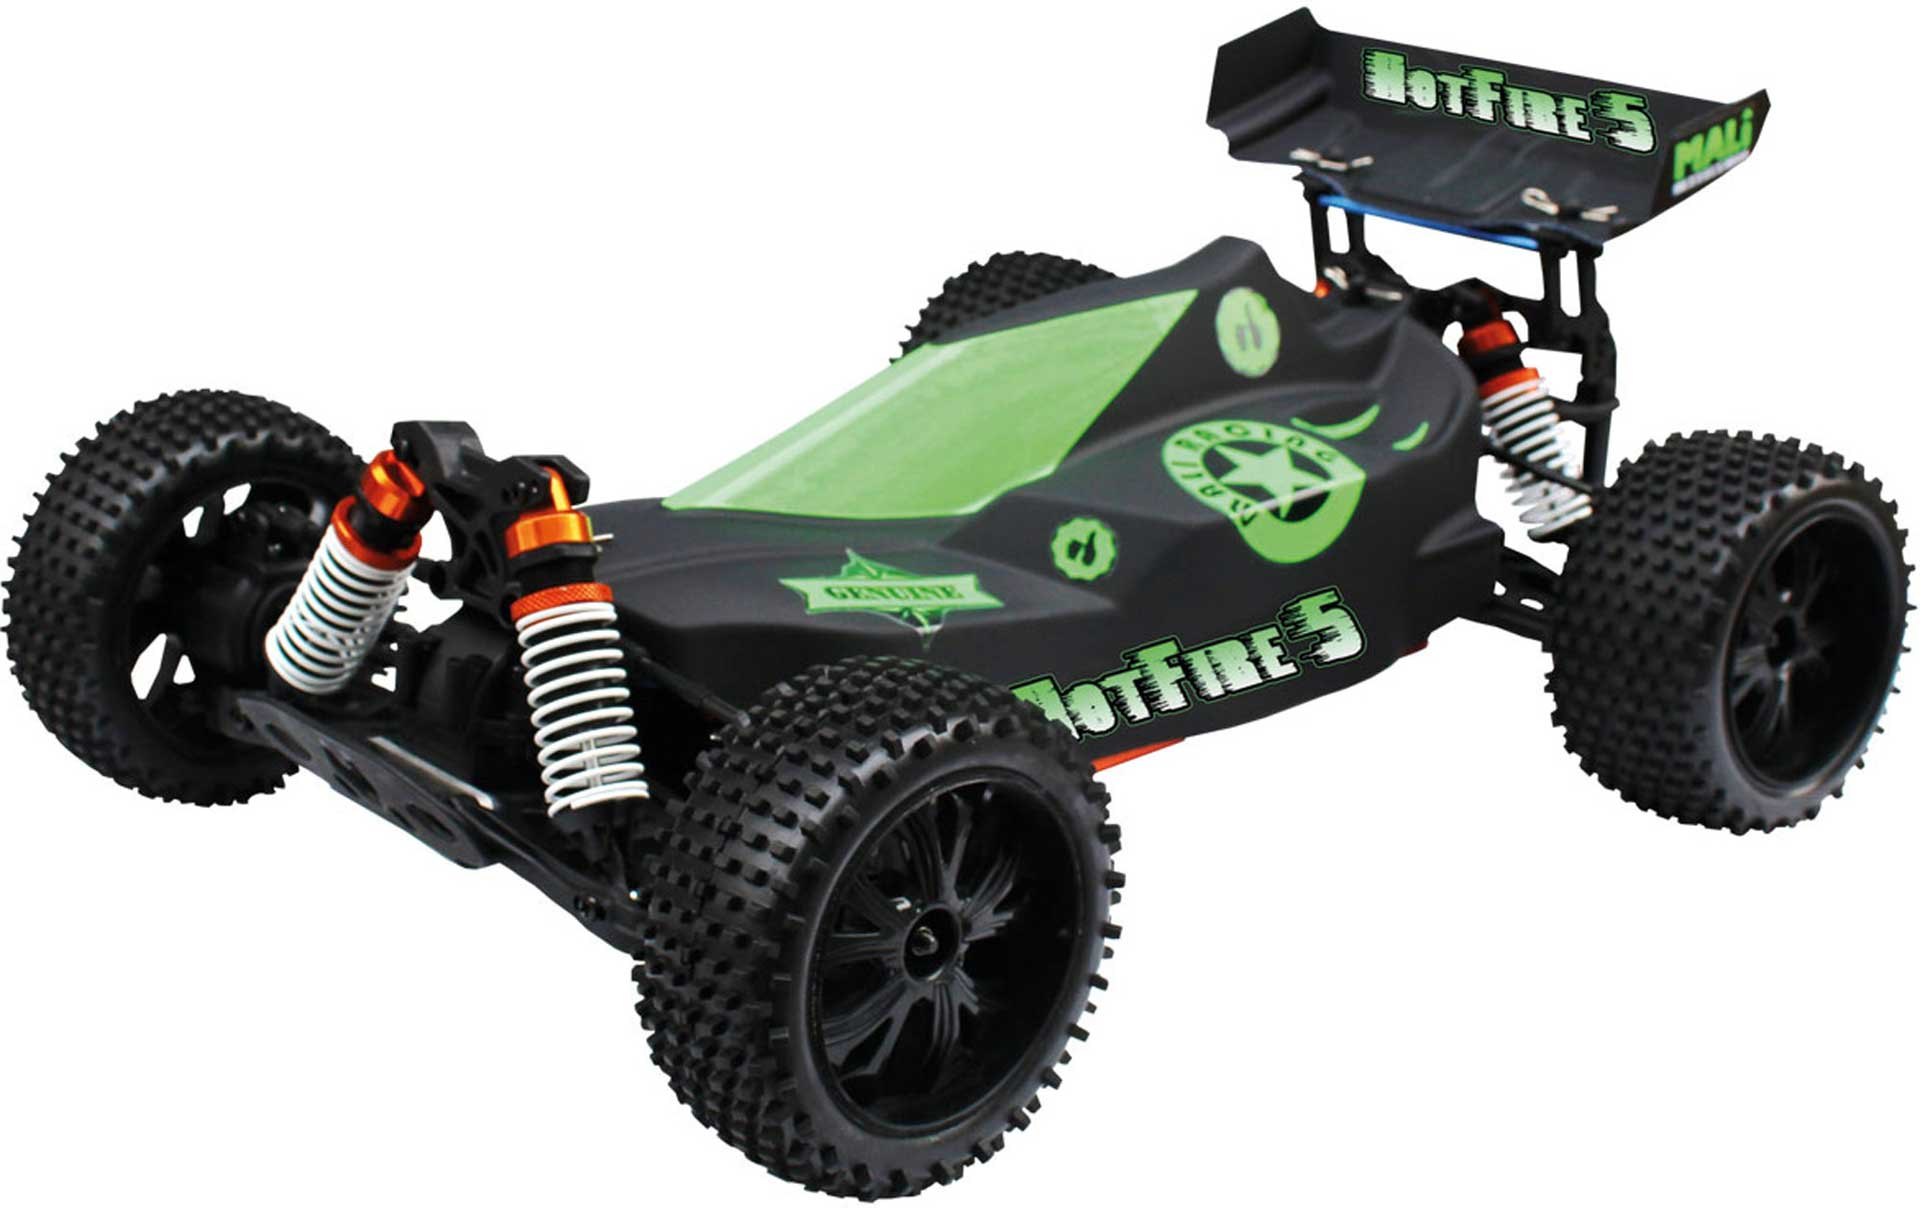 DRIVE & FLY MODELS HOTFIRE 5 BRUSHLESS BUGGY 1/10XL RTR 4WD